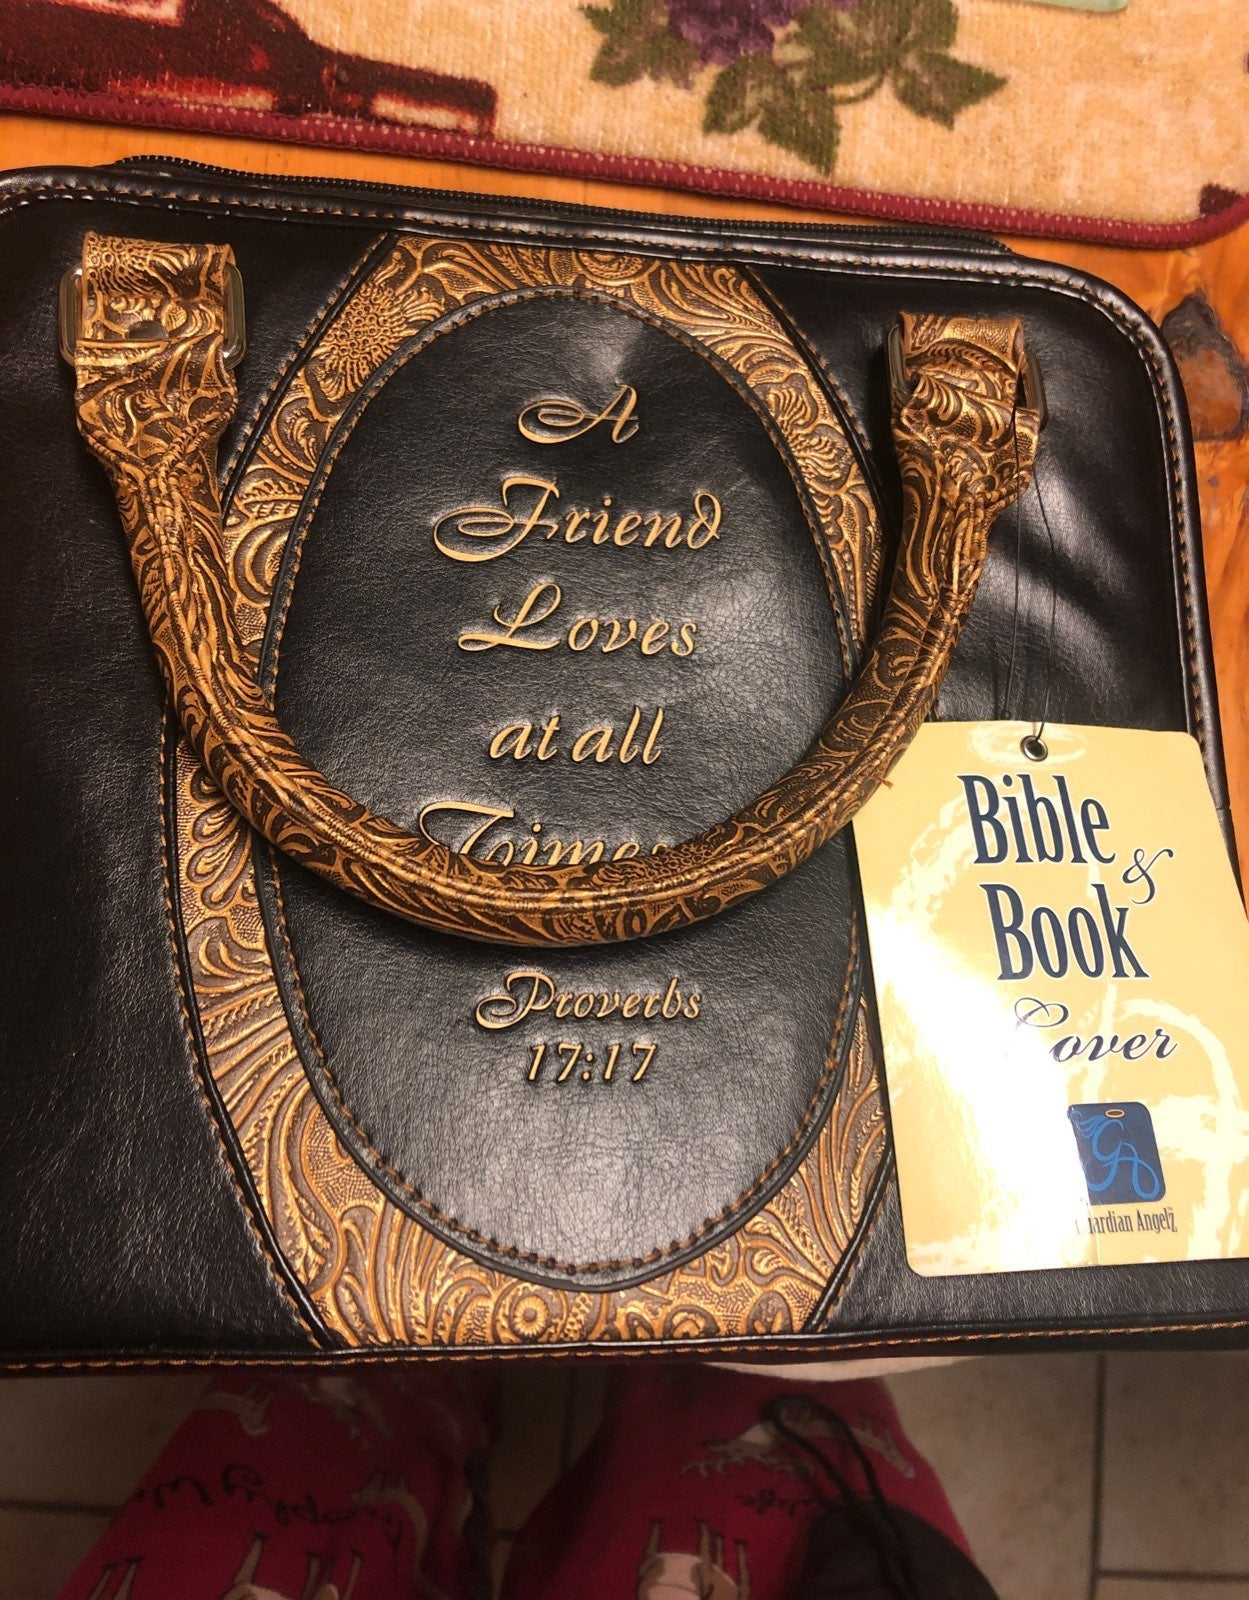 Bible and book covers